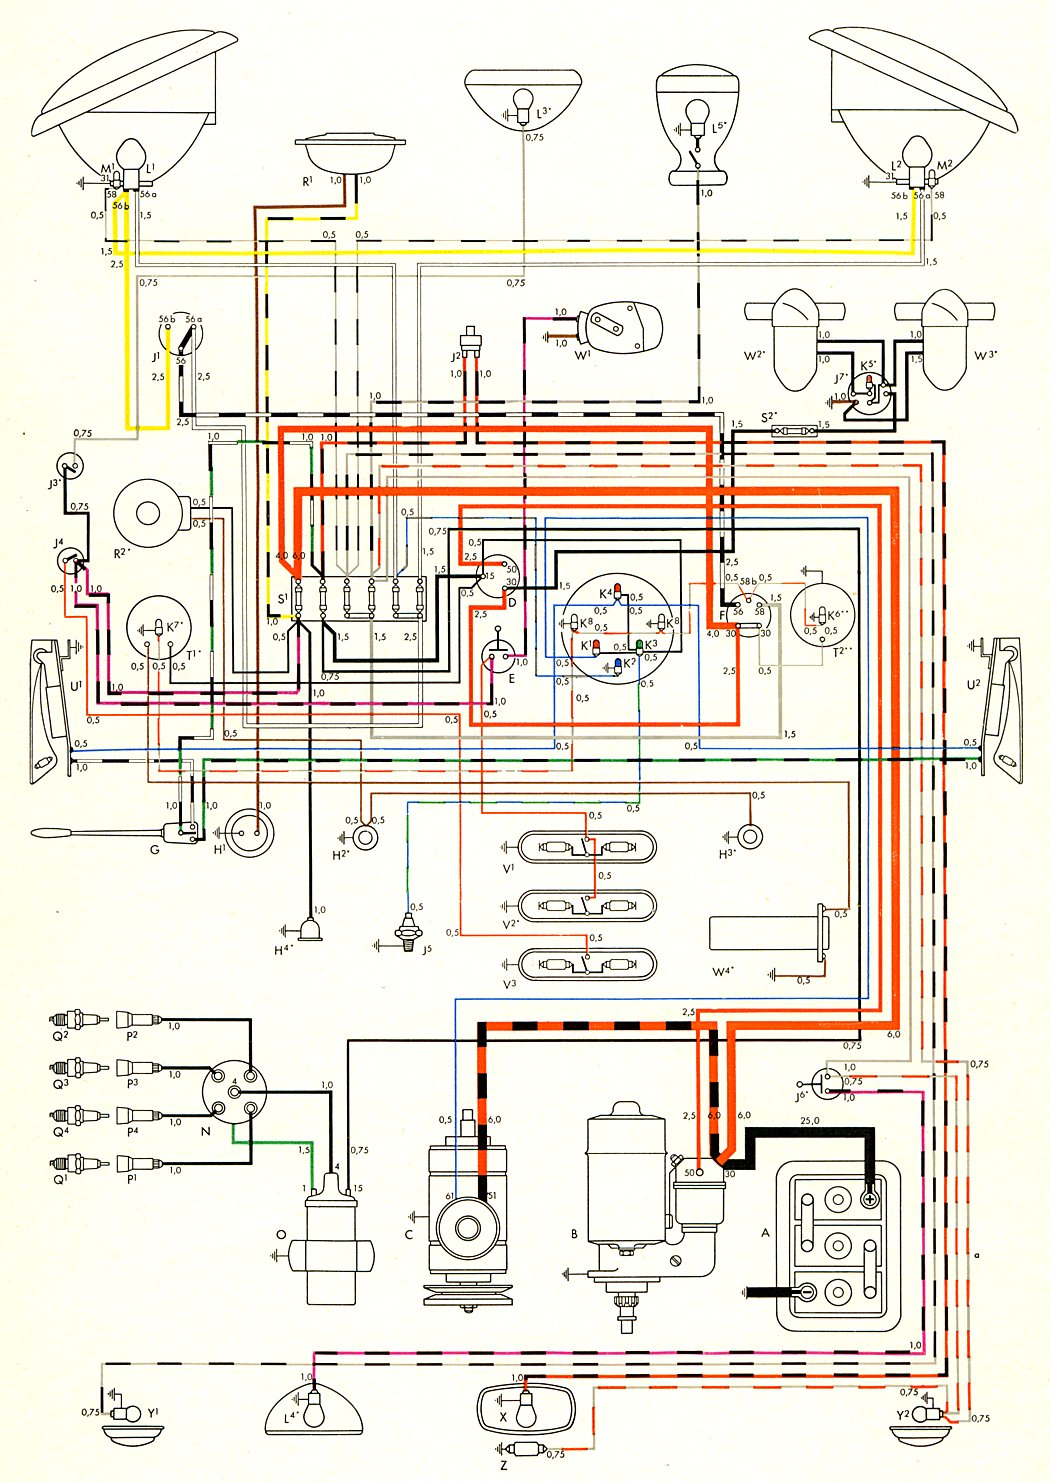 bus_nov57 thesamba com type 2 wiring diagrams vw t4 wiring diagram pdf at gsmx.co